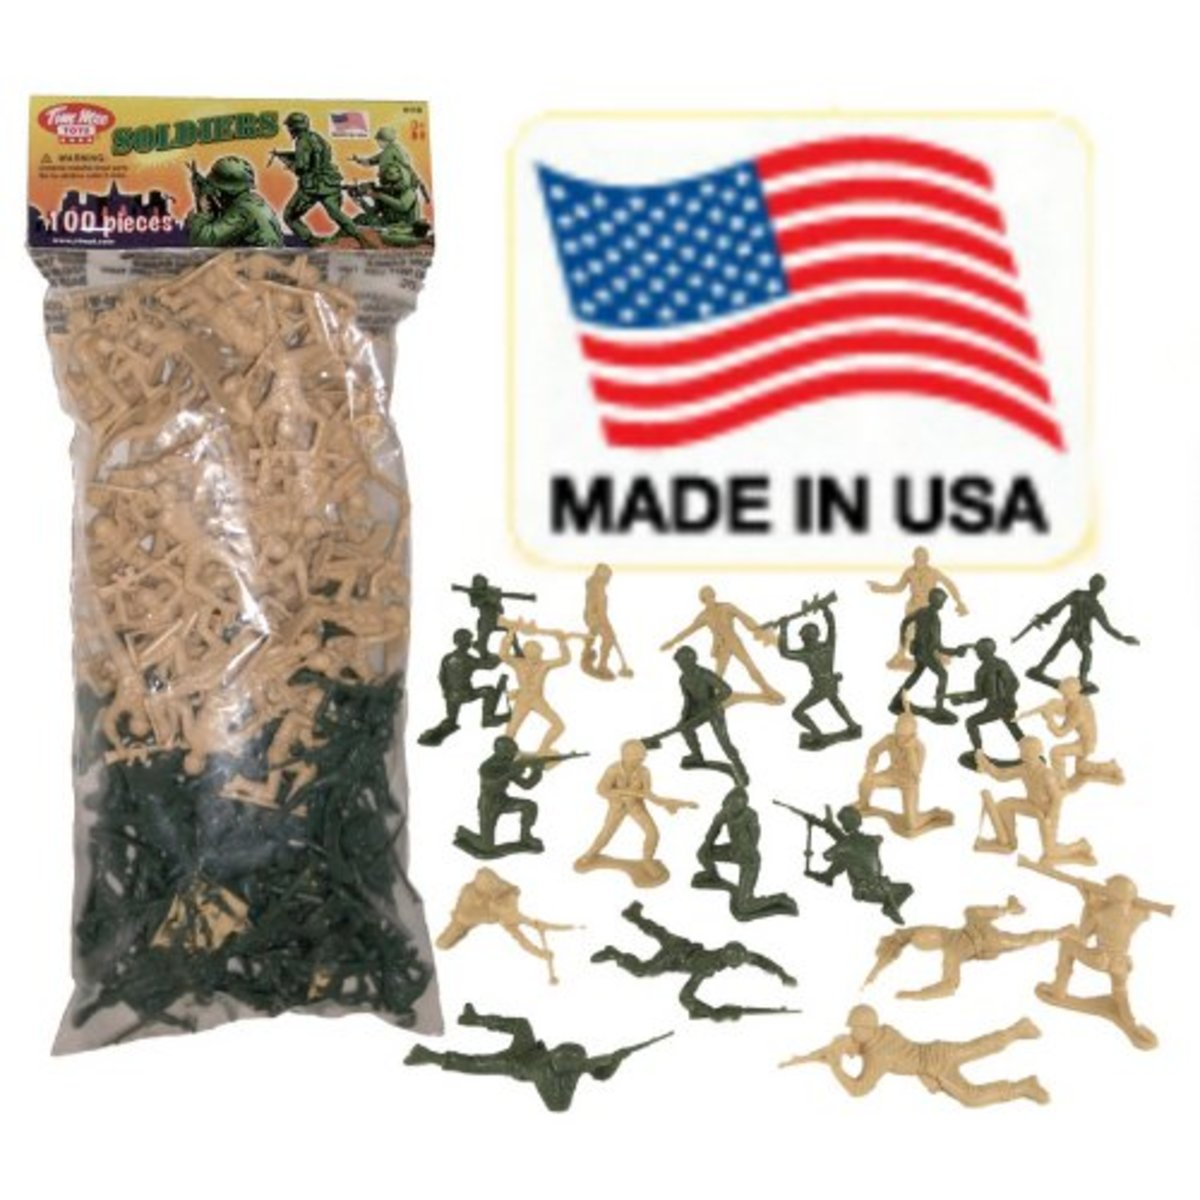 Made in USA plastic soldiers